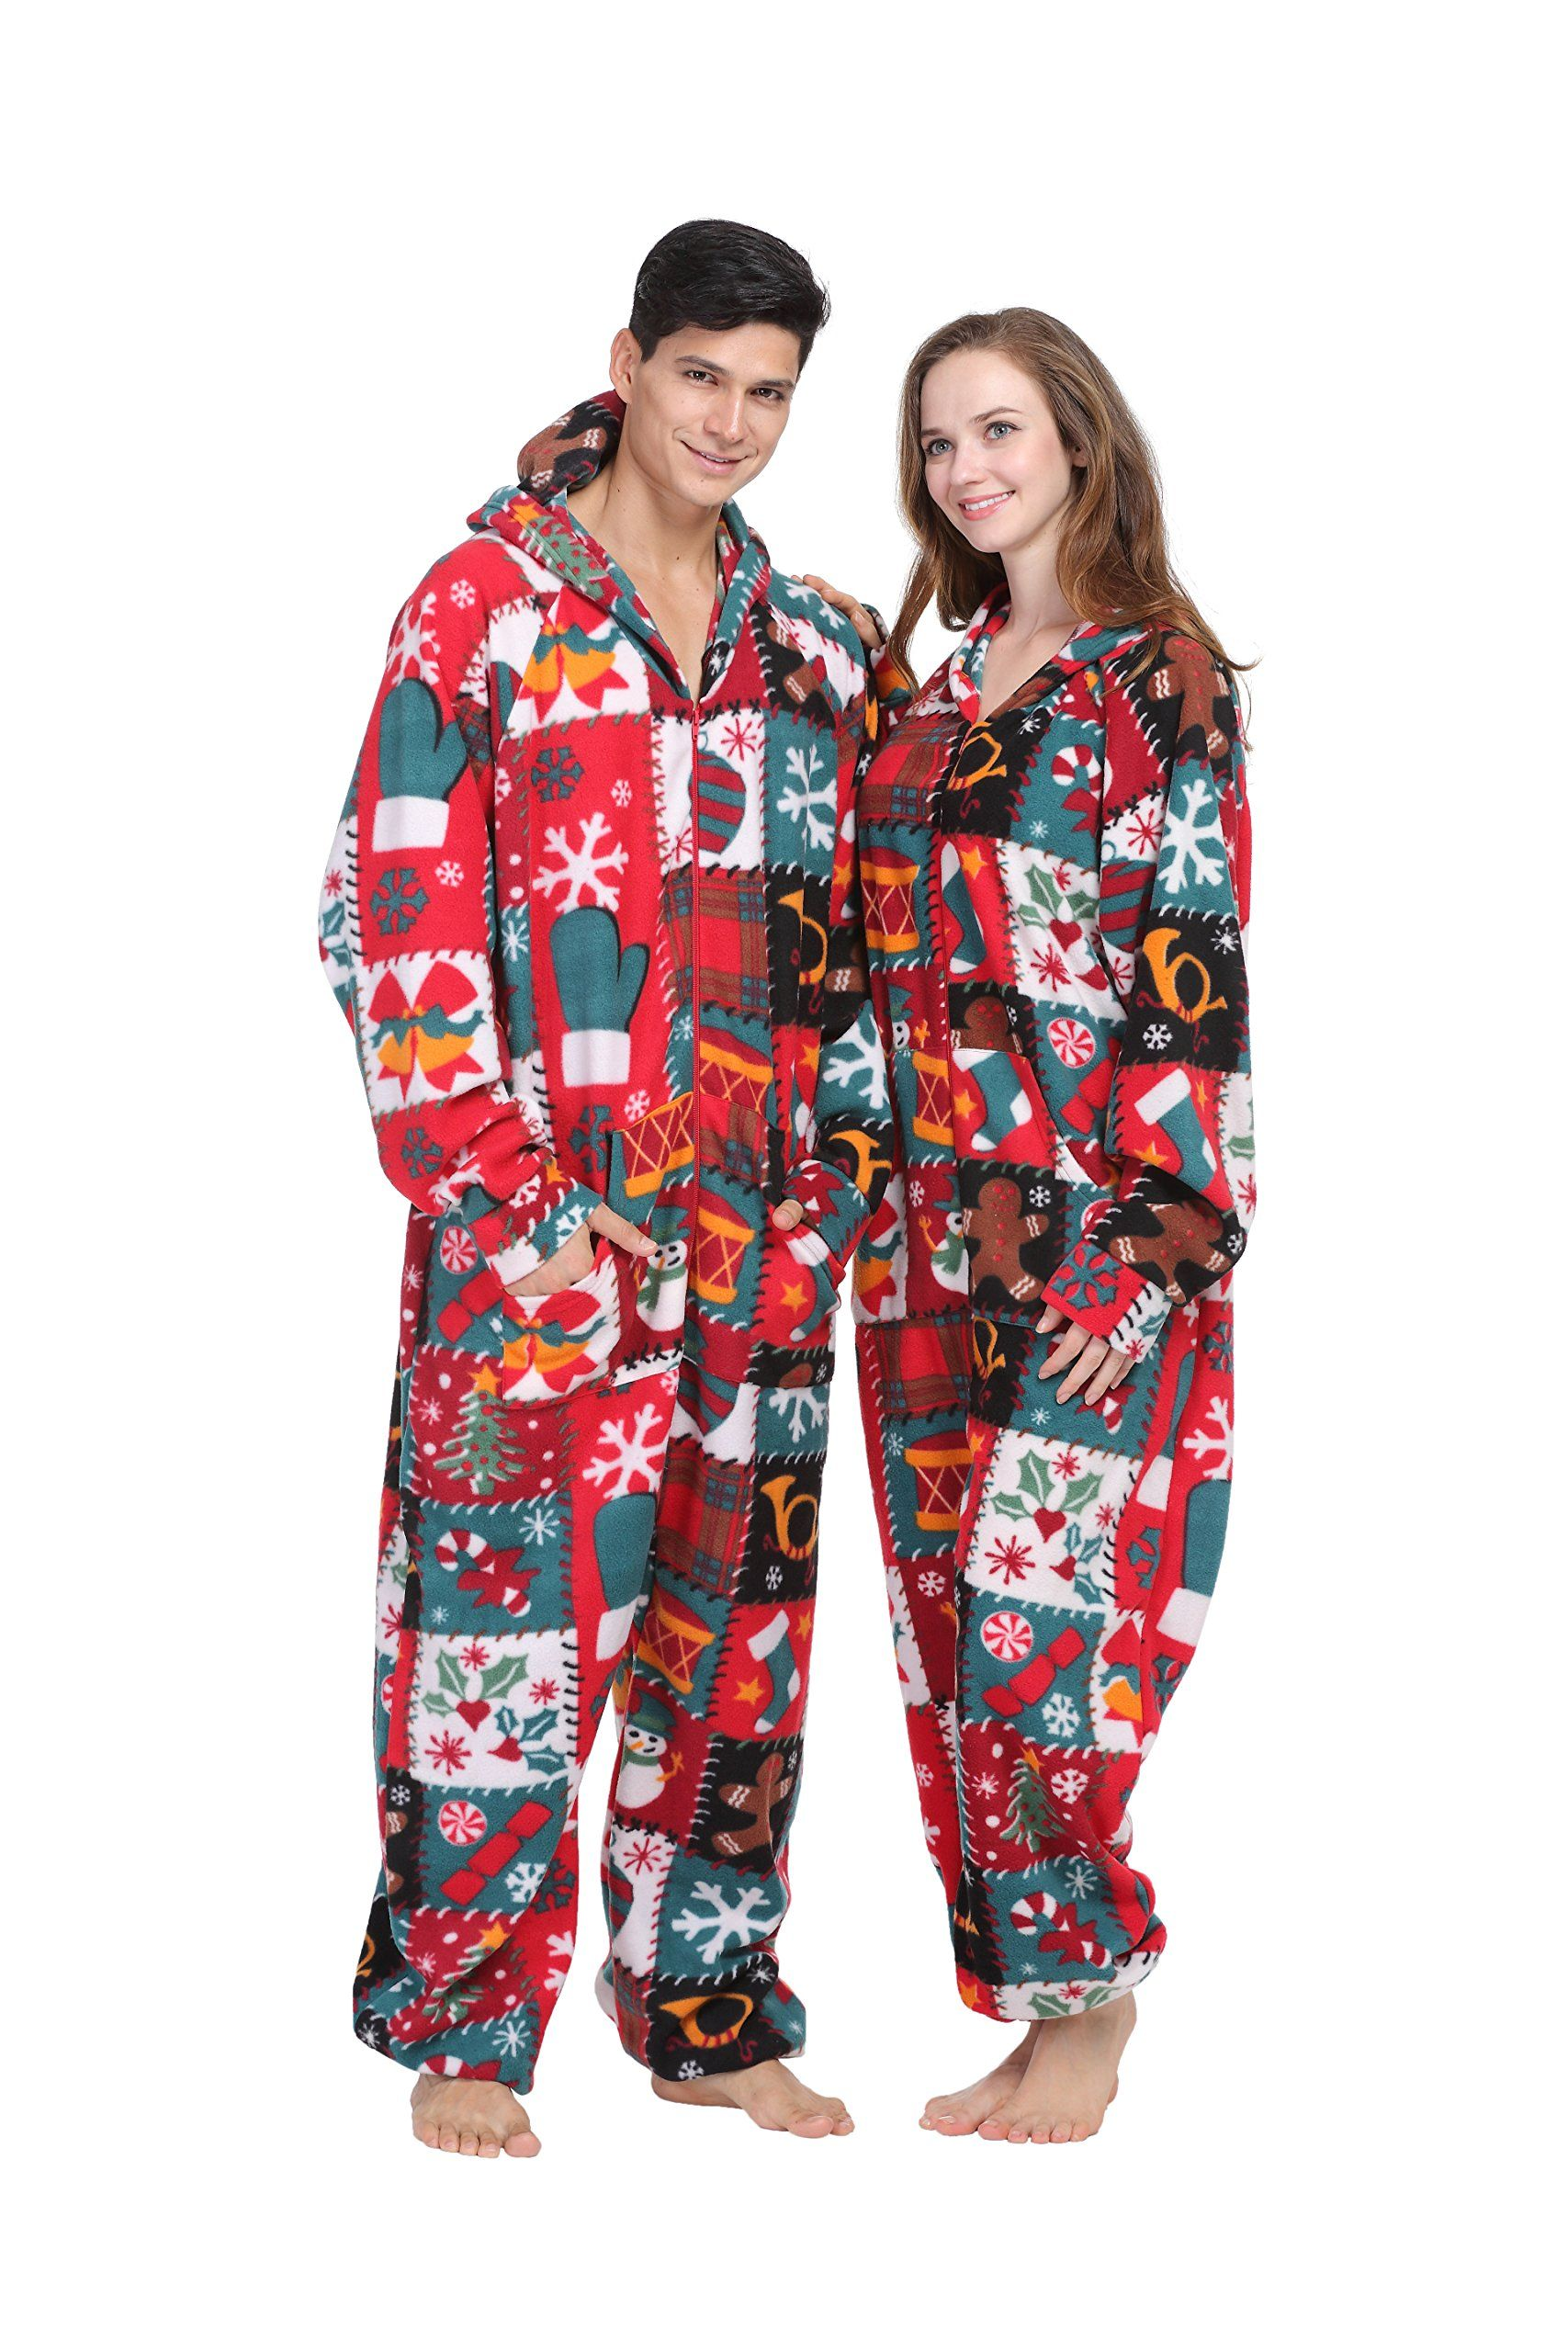 party pajama womenu0027s u0026 menu0027s fleece hooded one piece pajamas uglyparty pajama womenu0027s u0026 menu0027s fleece hooded one piece pajamas ugly christmas